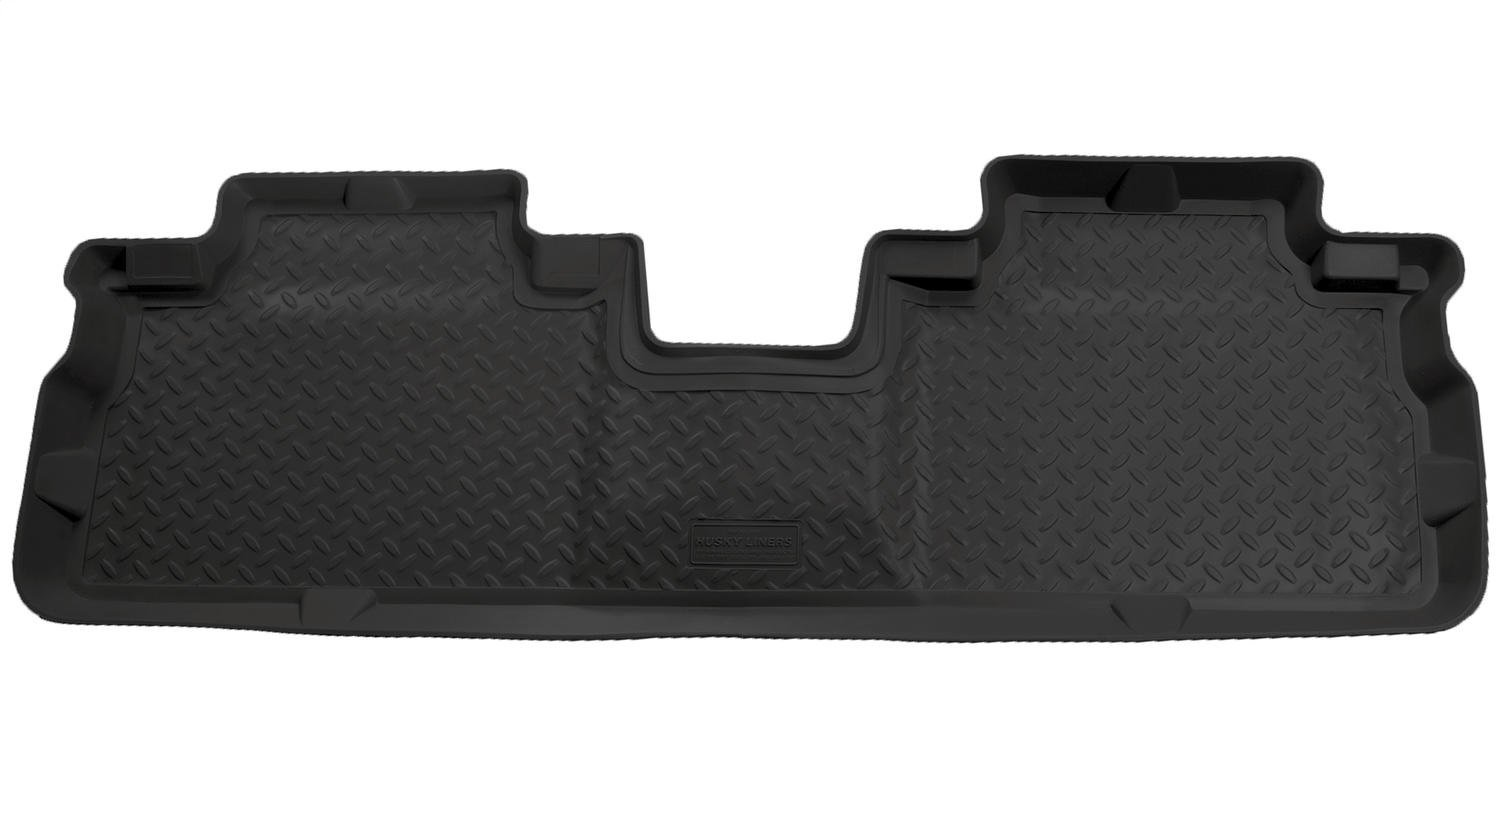 01-06 Tribute Winfield Consumer Products 63171 Husky Liners 2nd Seat Floor Liner Fits 01-08 Escape